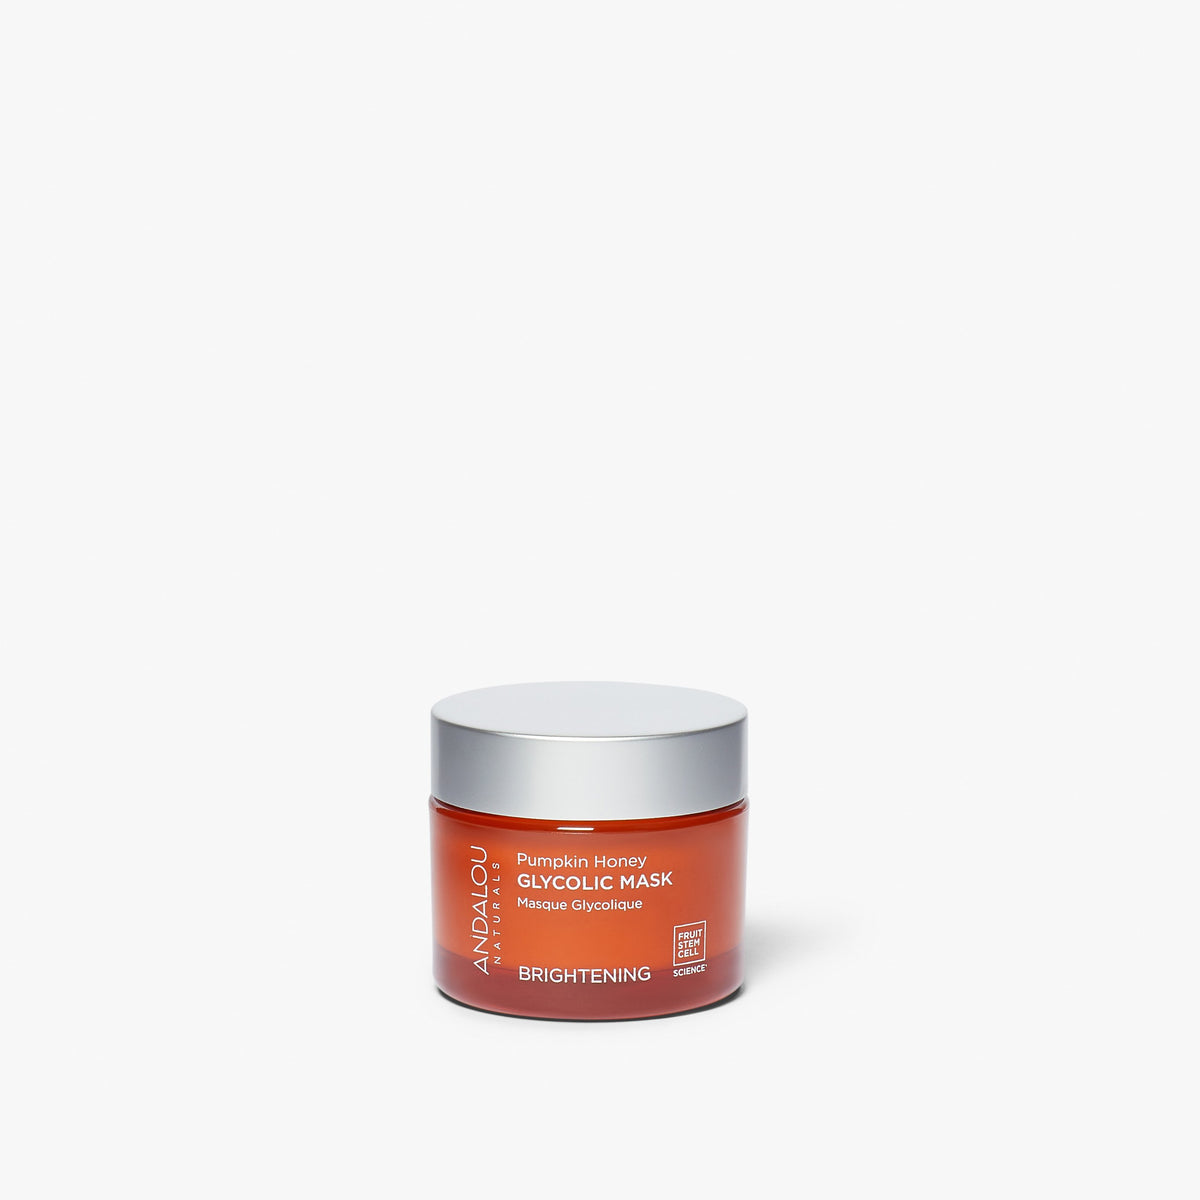 Jar of Brightening Pumpkin Honey Glycolic Mask